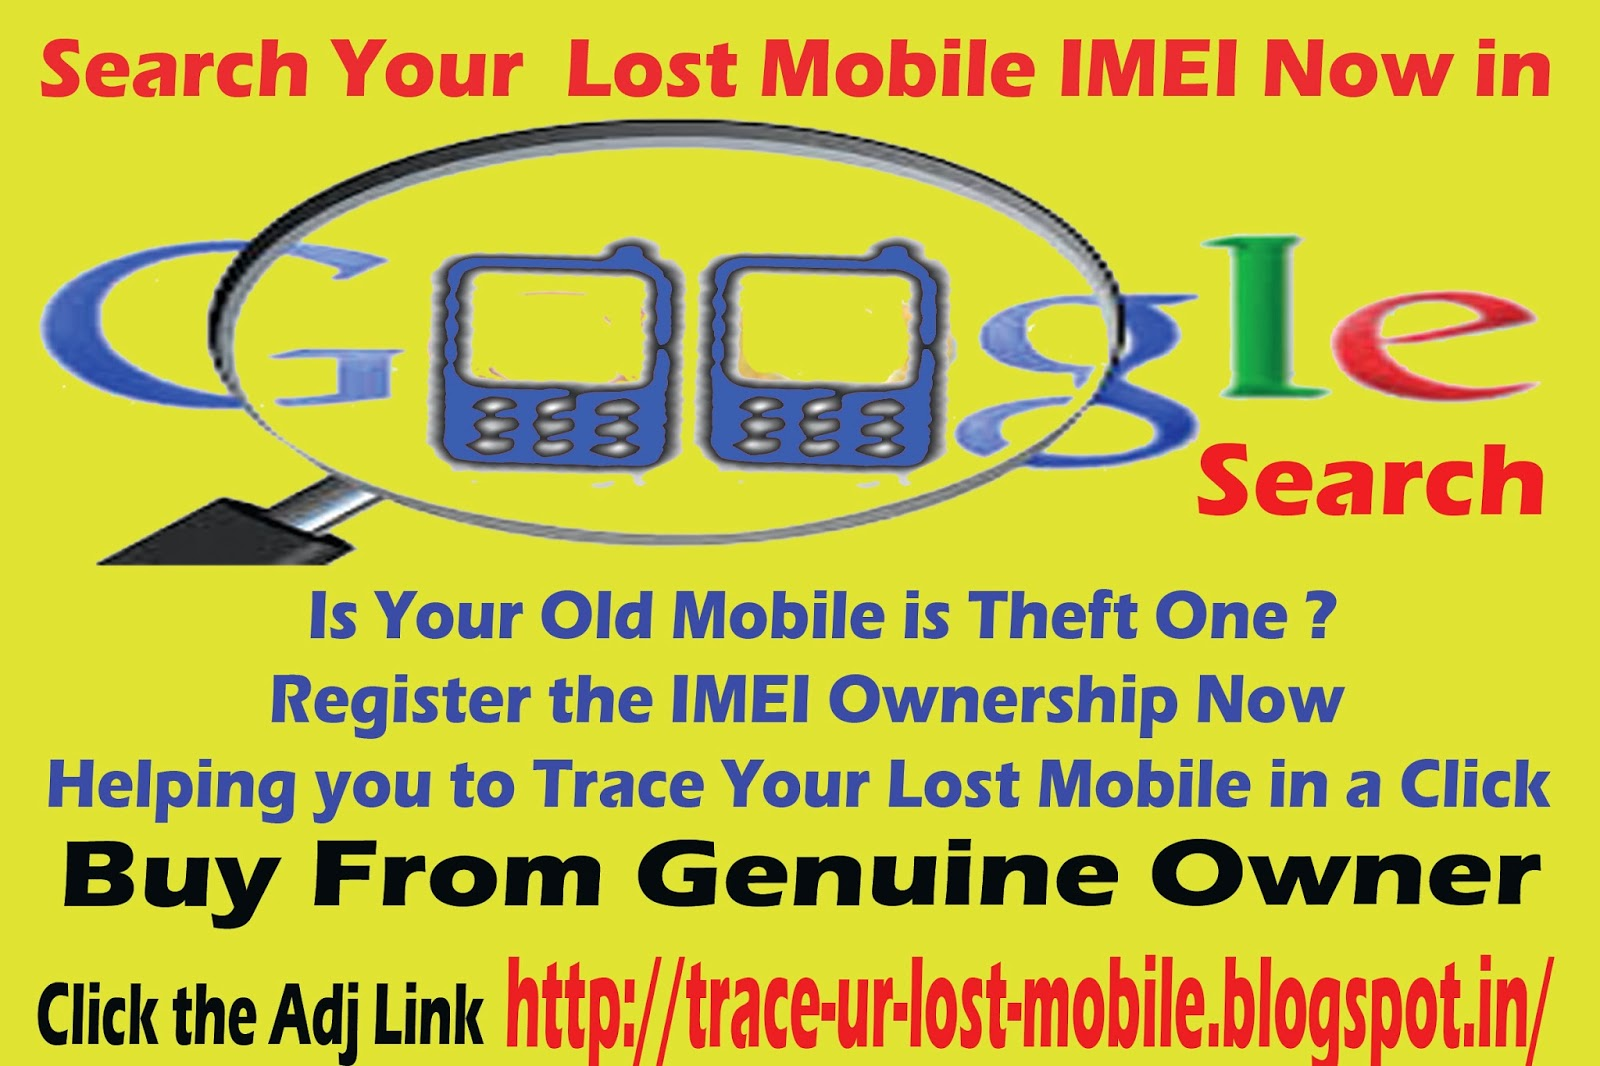 Track Your Lost Mobile: List of Lost Mobile IMEI Numbers